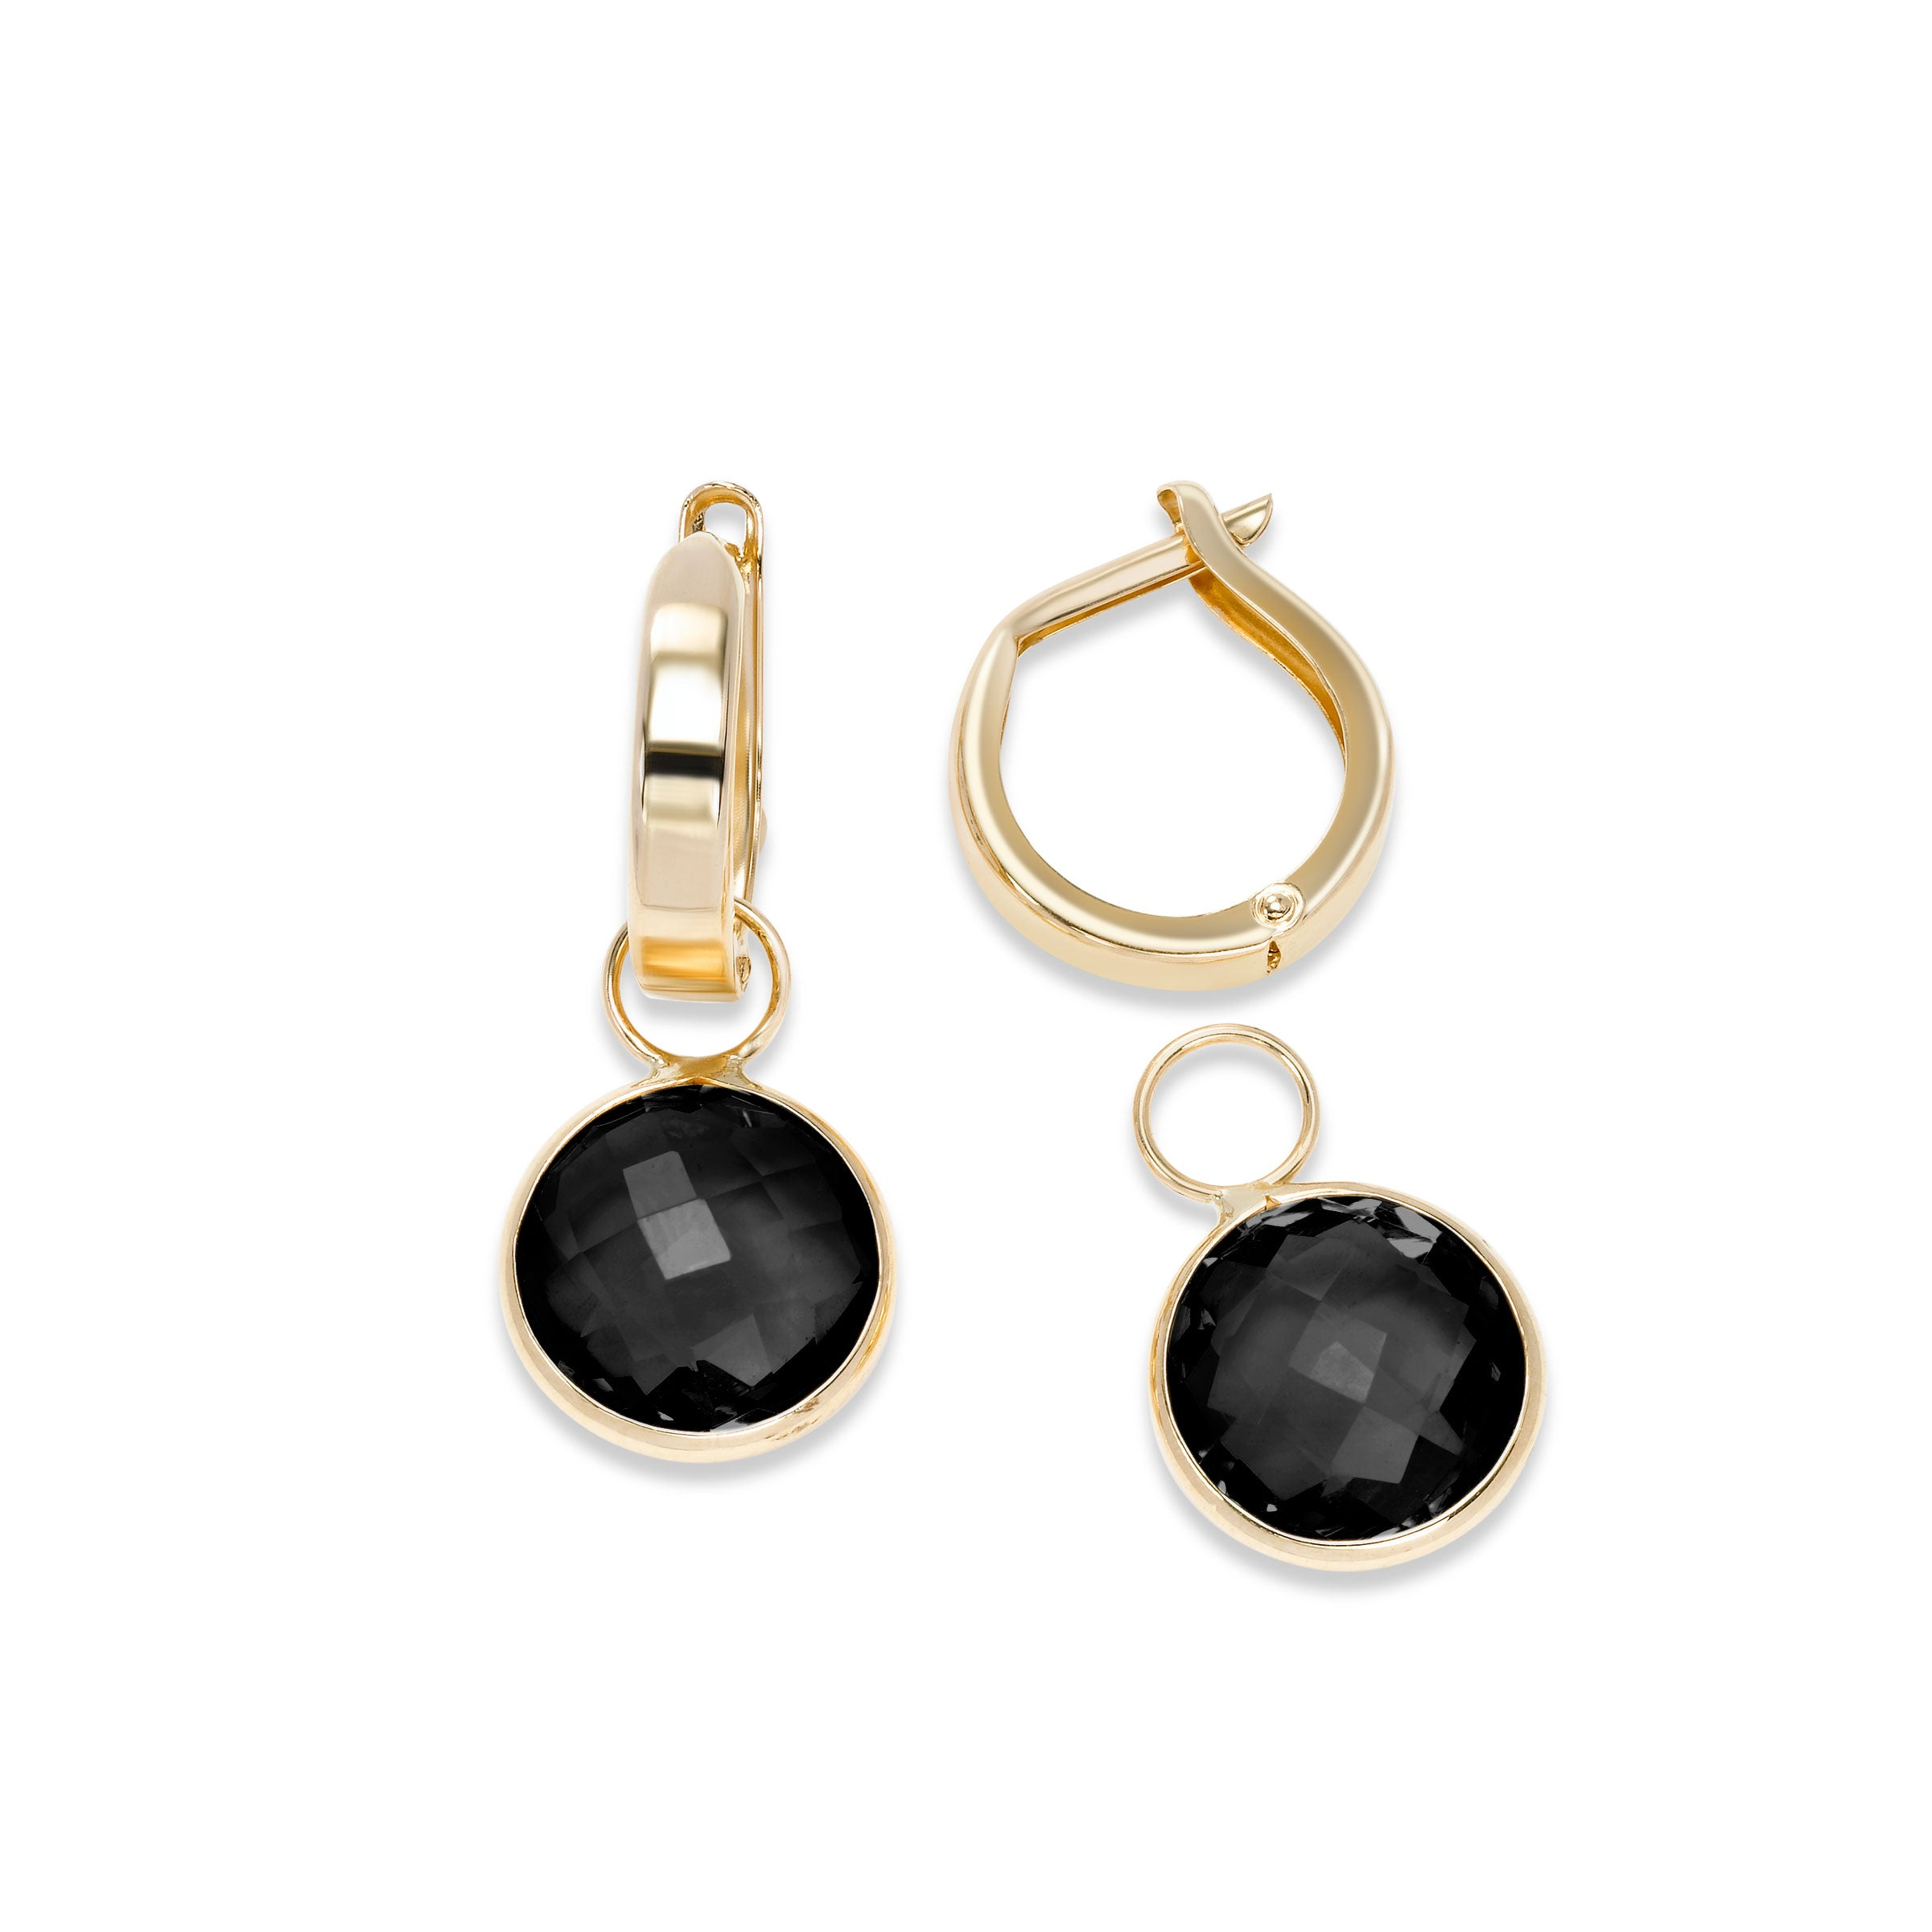 Hoop Earrings with Detachable Black Onyx Dangles, 14K Yellow Gold